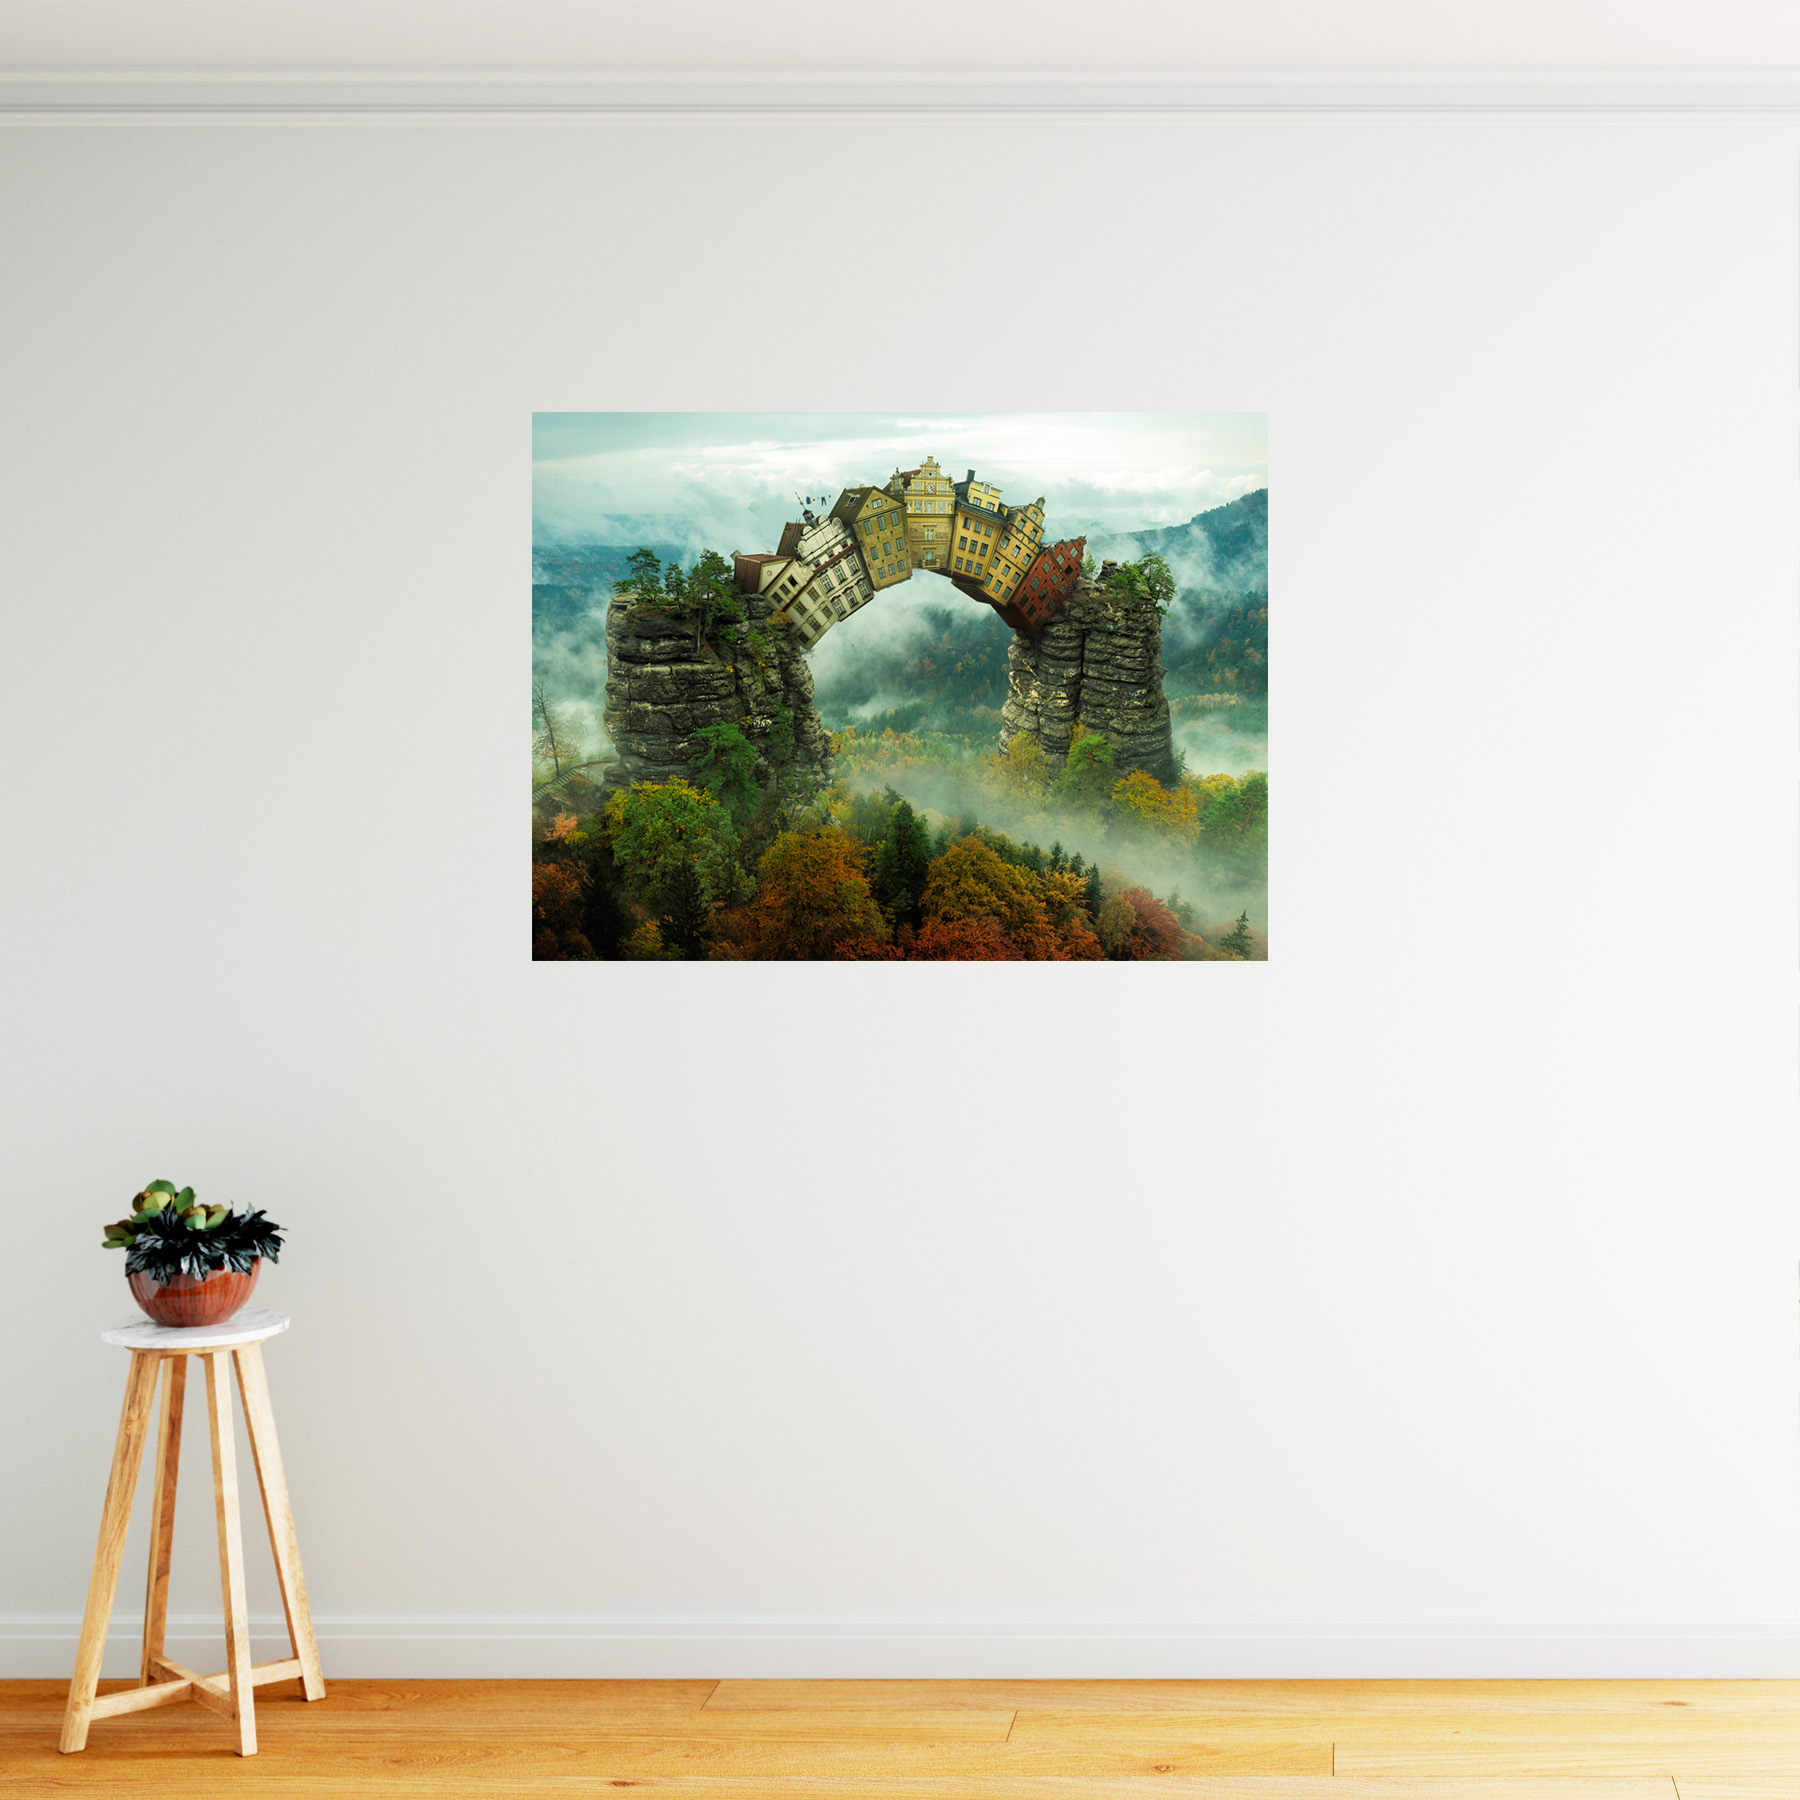 Kunstdruck Groß Details Zu Fantasy Surreal Houses Nature Trees Large Framed Art Print Poster 18x24 Inches